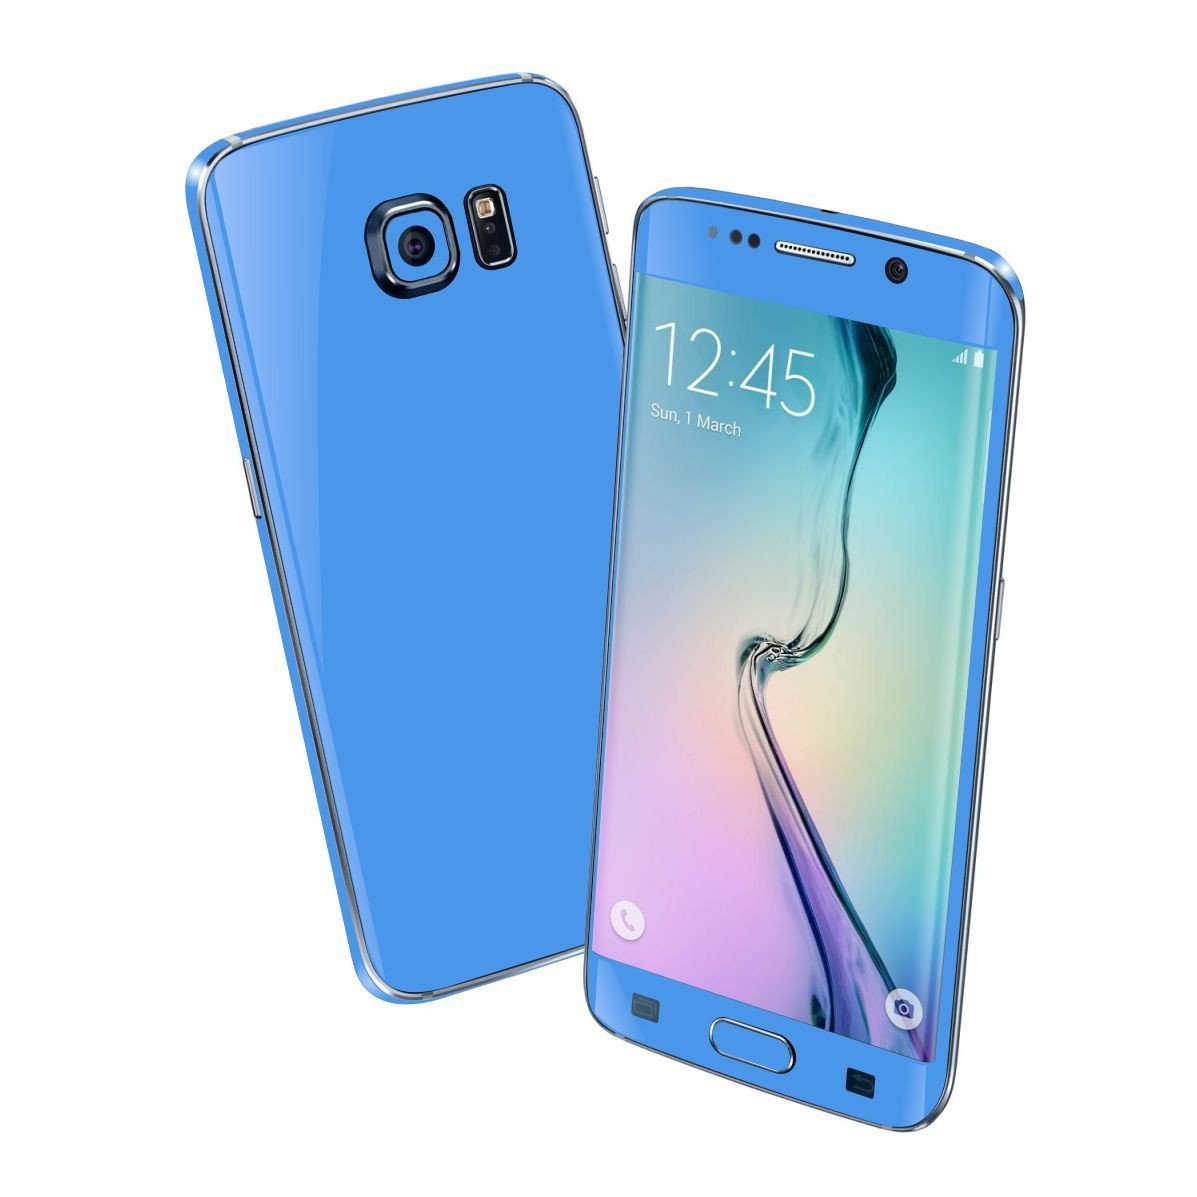 Samsung Galaxy S6 EDGE Colorful BLUE MATT Skin Wrap Sticker Cover Protector Decal by EasySkinz